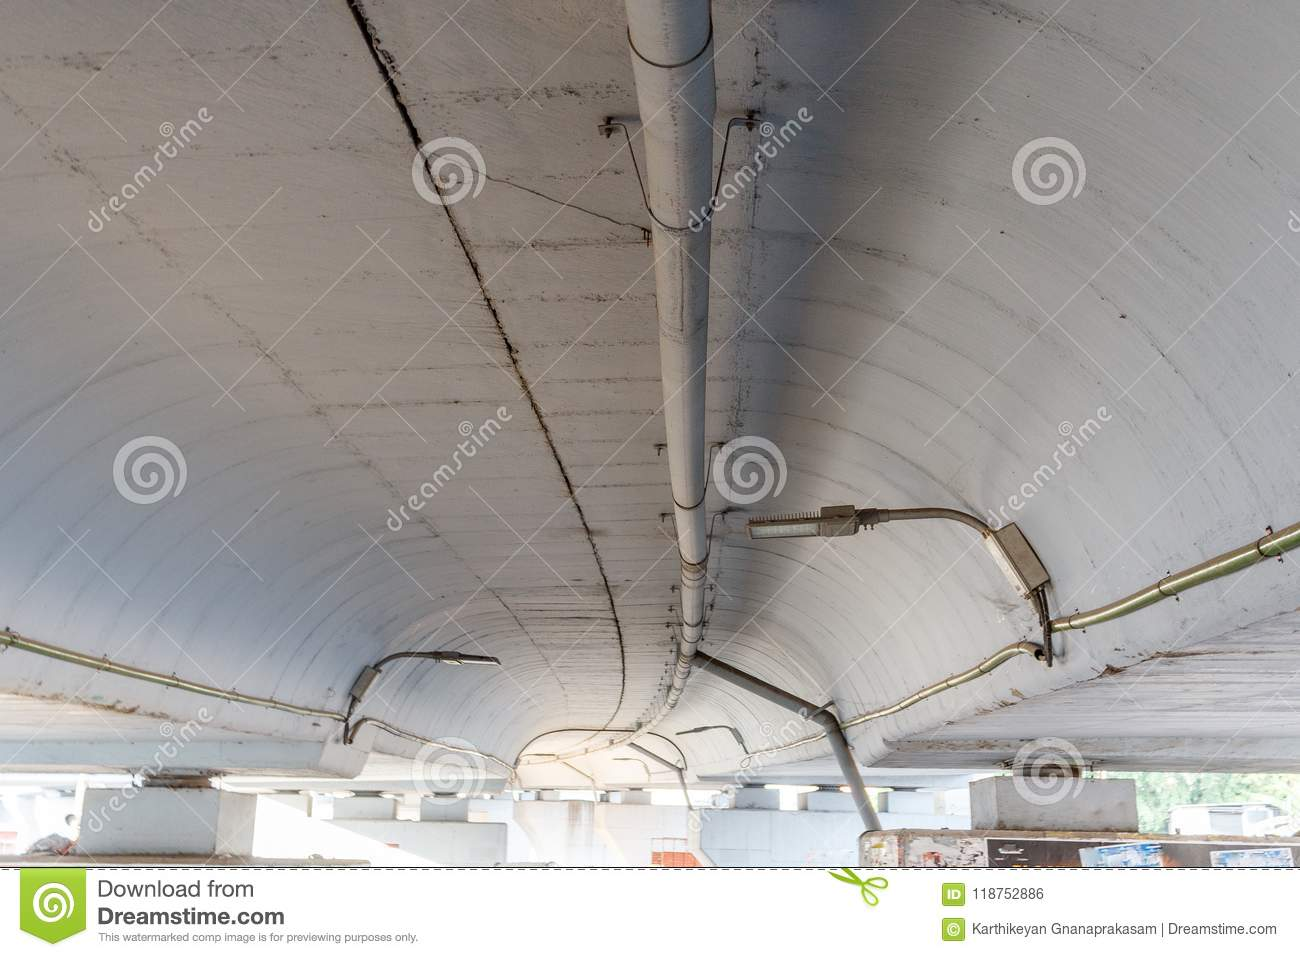 Wide view of underground of a flyover seen with lamp lights and